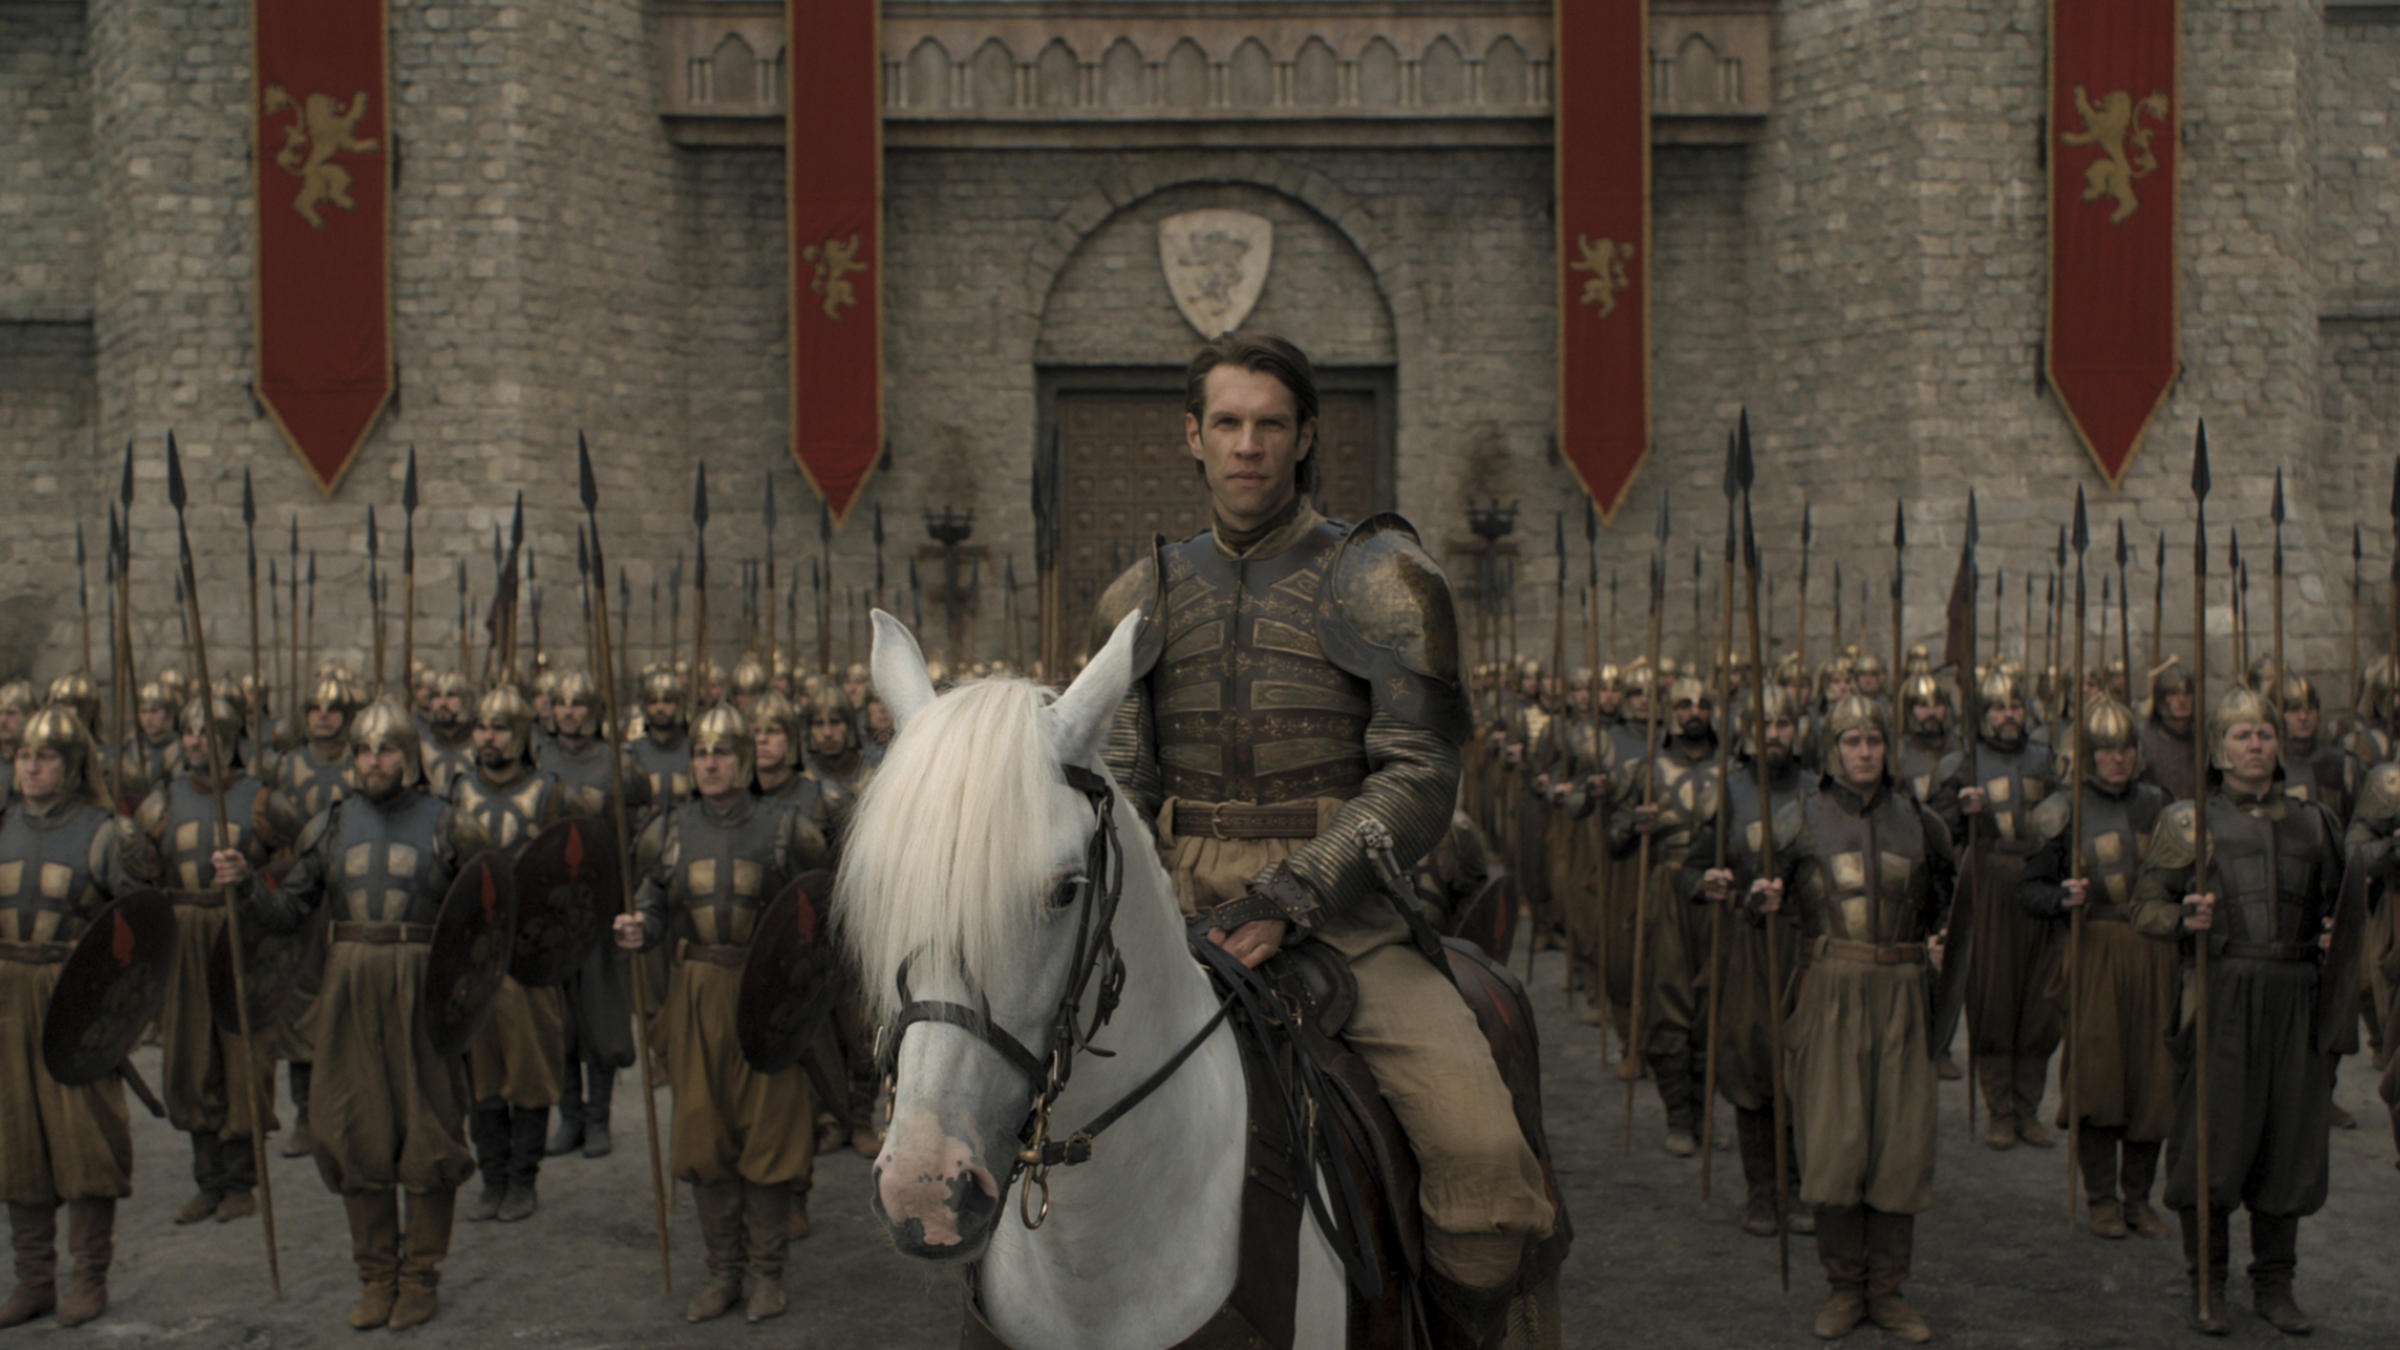 Strickland marc rissmann seriously thats his name harry strickland leads an army of mercenaries in the penultimate episode of game of thrones